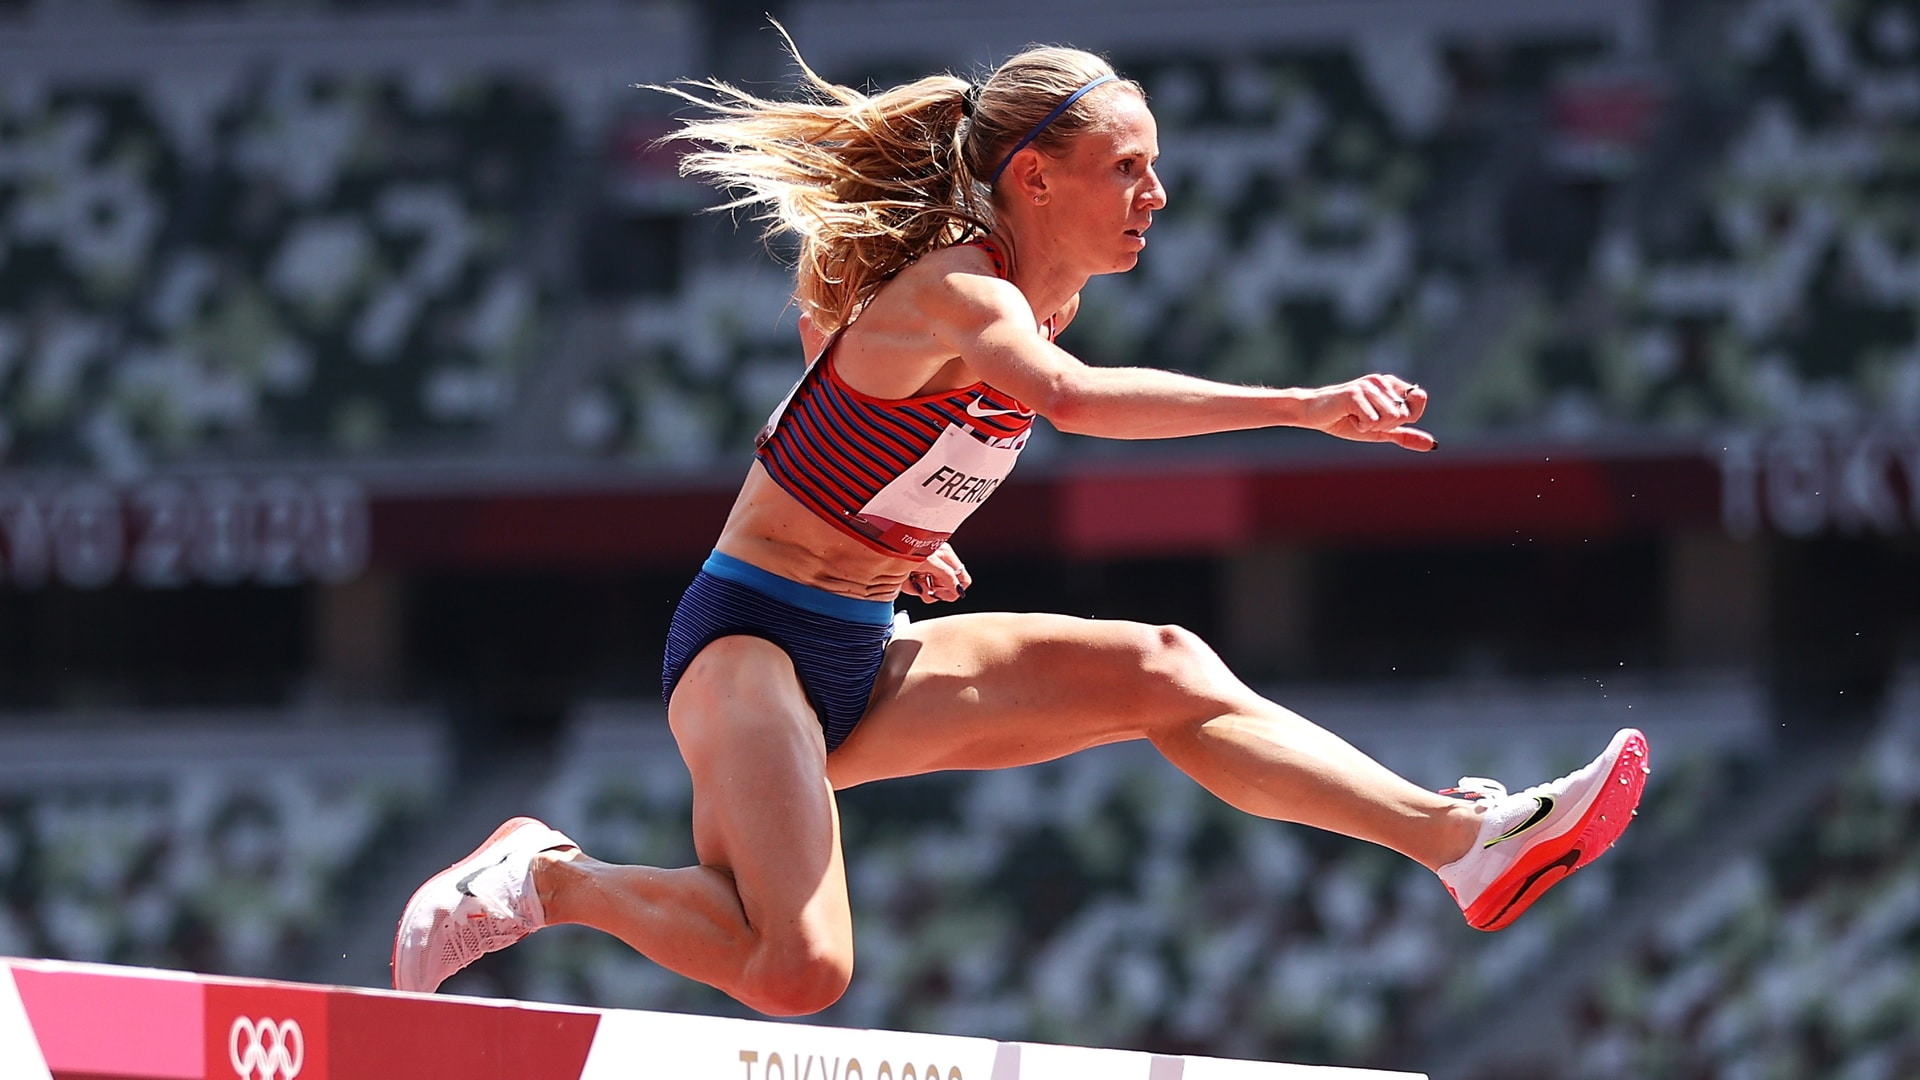 Image for Podcast: What draws runners to the steeplechase?